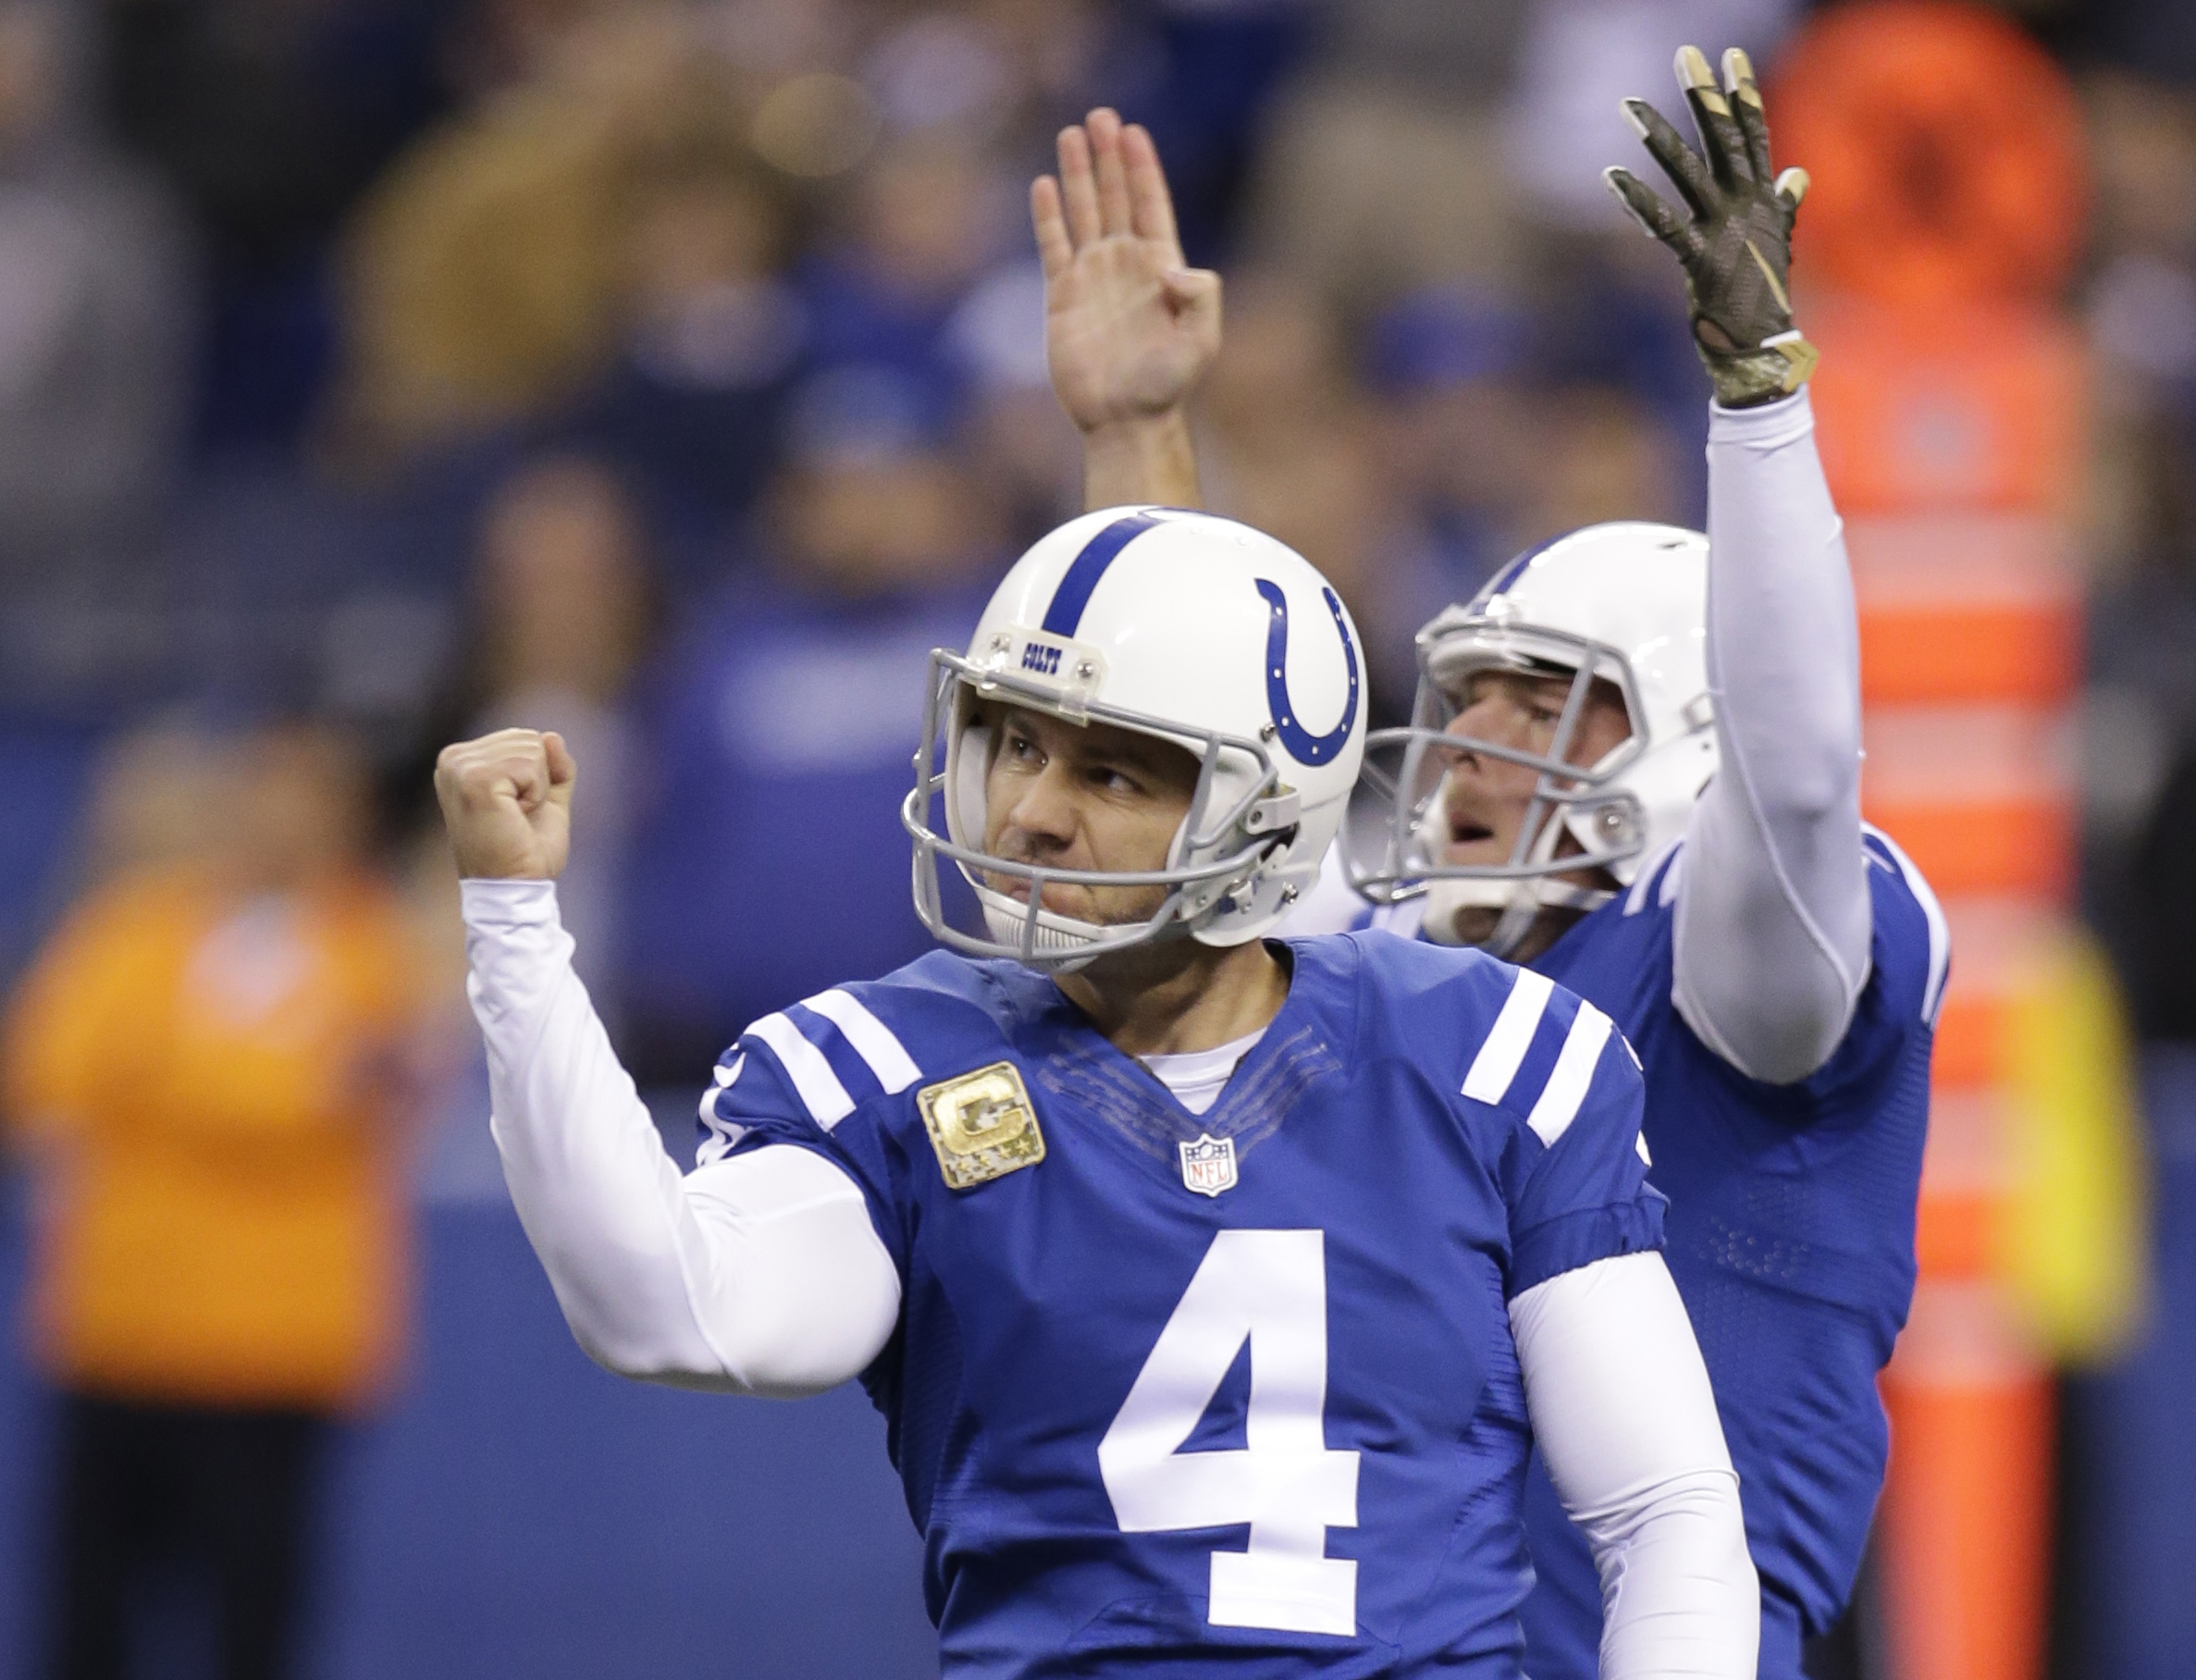 FILE - In this Nov. 8, 2015, file photo, Indianapolis Colts' Adam Vinatieri (4) celebrates with Pat McAfee after Vinatieri kicked a 55-yard field goal during an NFL football game against the Denver Broncos in Indianapolis. Vinatieri, the NFL's oldest play